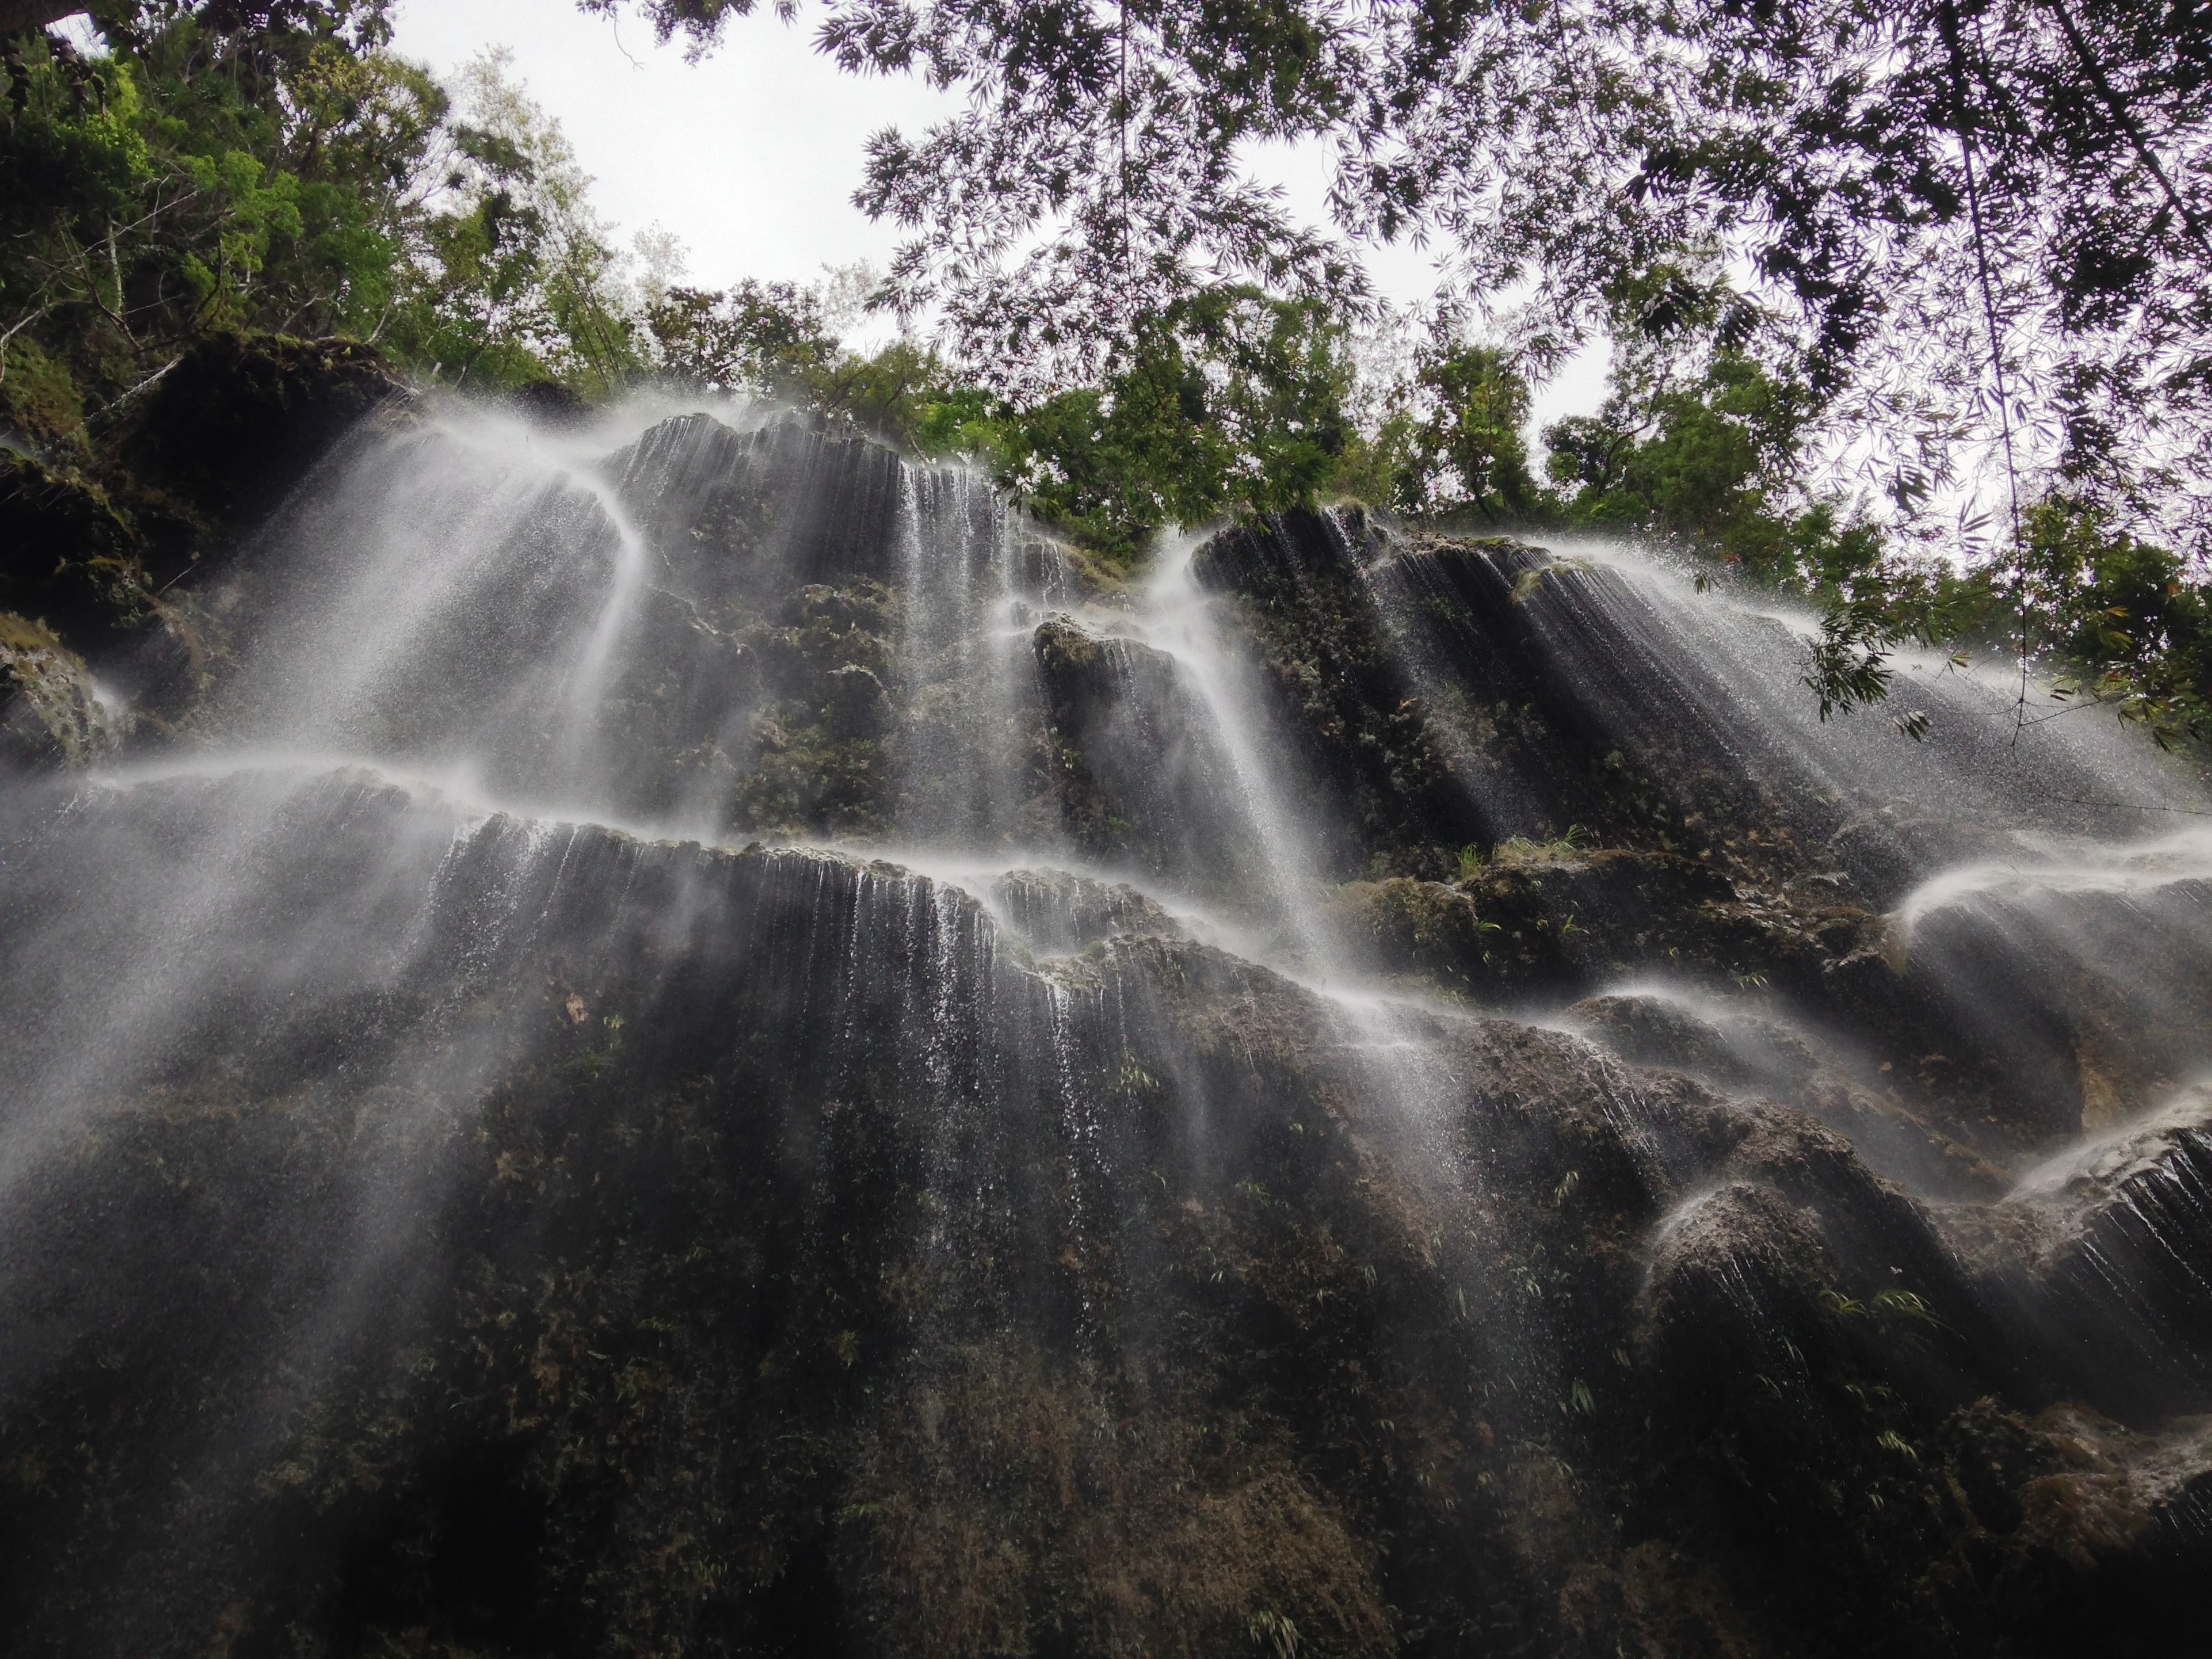 A light waterfall cascading down the side of a rocky cliff lined with trees